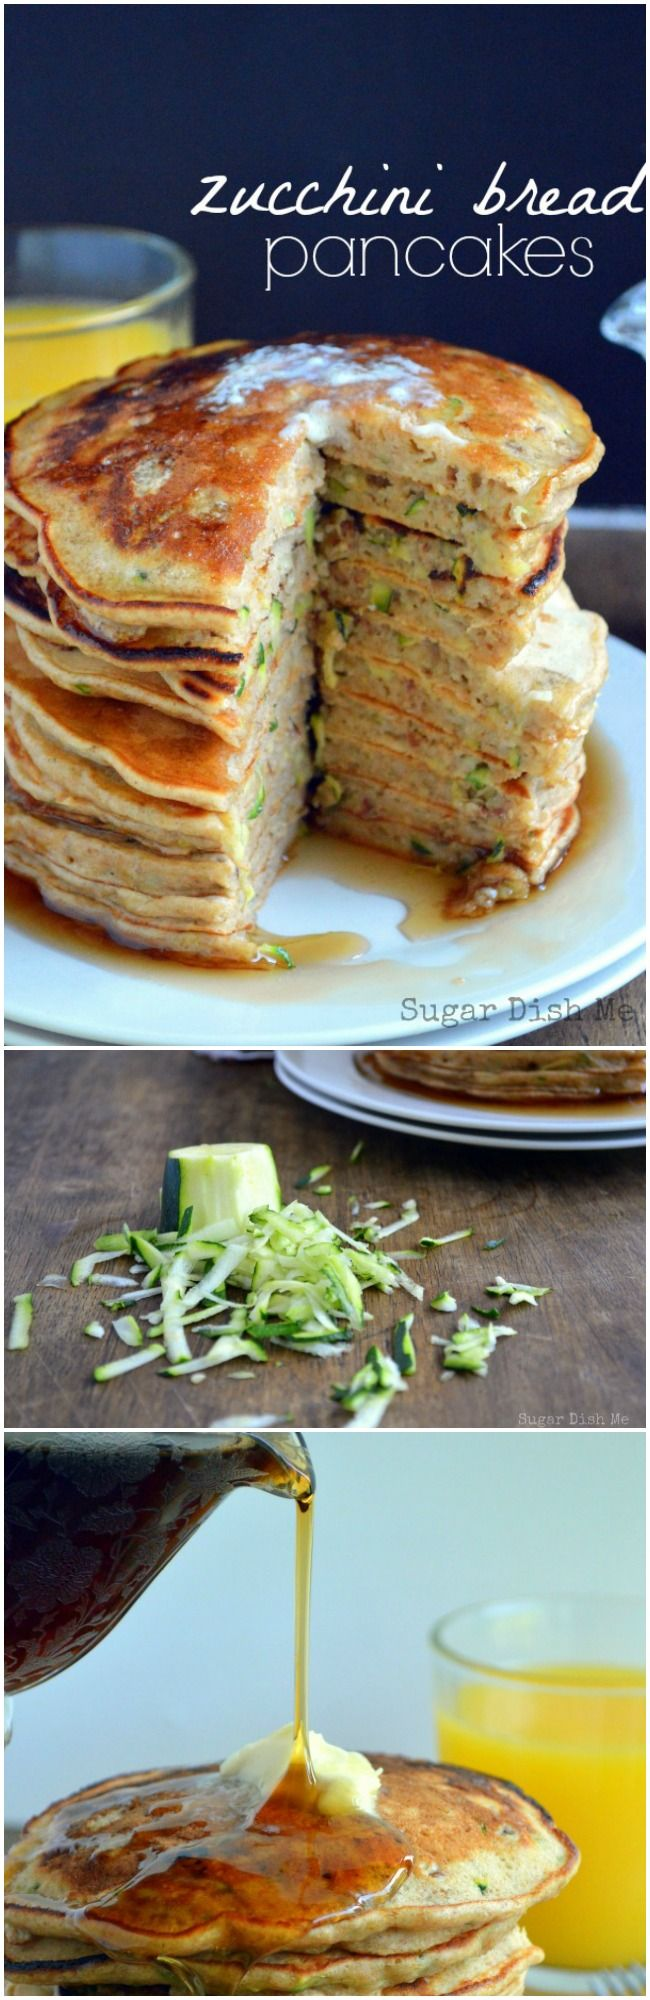 Zucchini Bread Pancakes Recipe - Fluffy buttermilk pancakes loaded with fresh shredded zucchini! Zucchini Bread Pancakes are a perfect summer breakfast and a great way to use up some of those garden veggies!